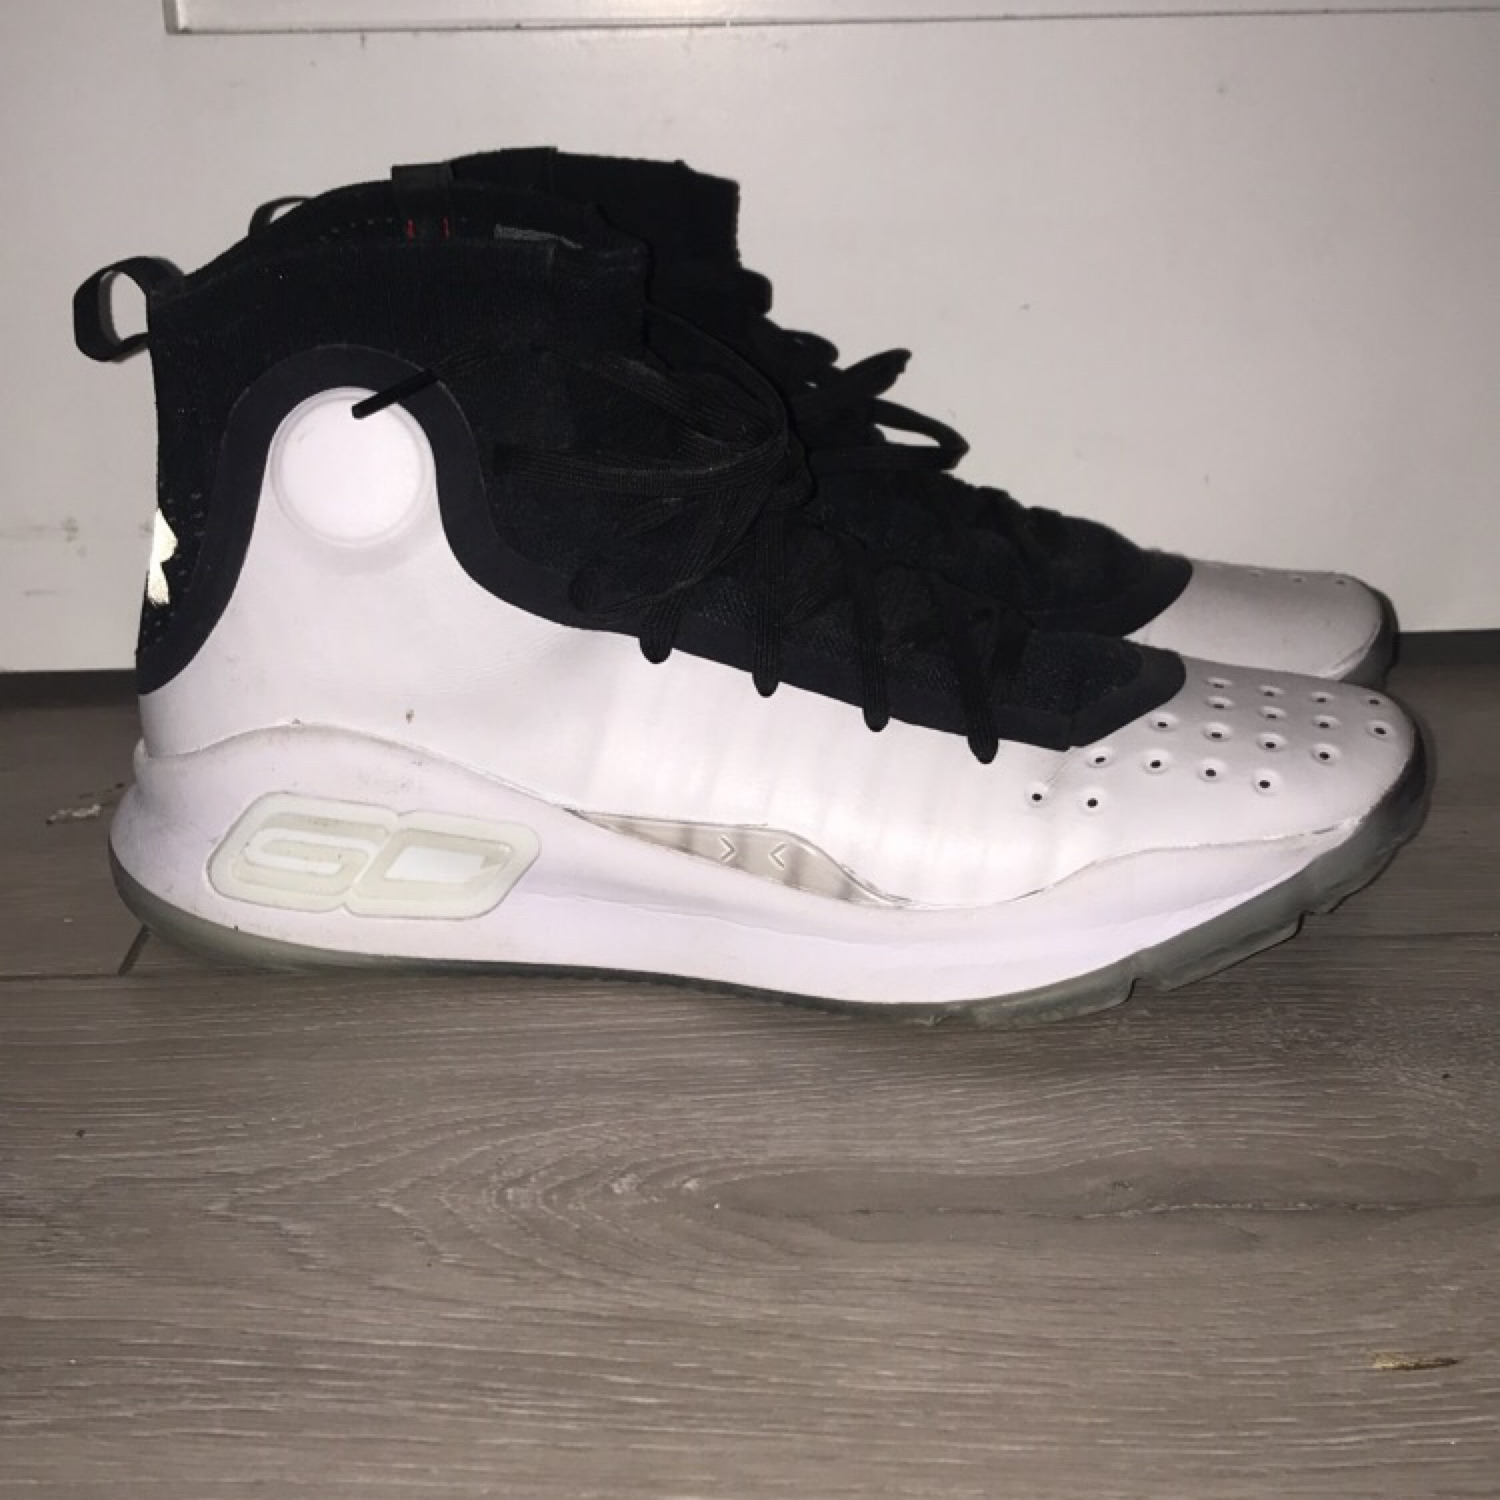 Curry 4S